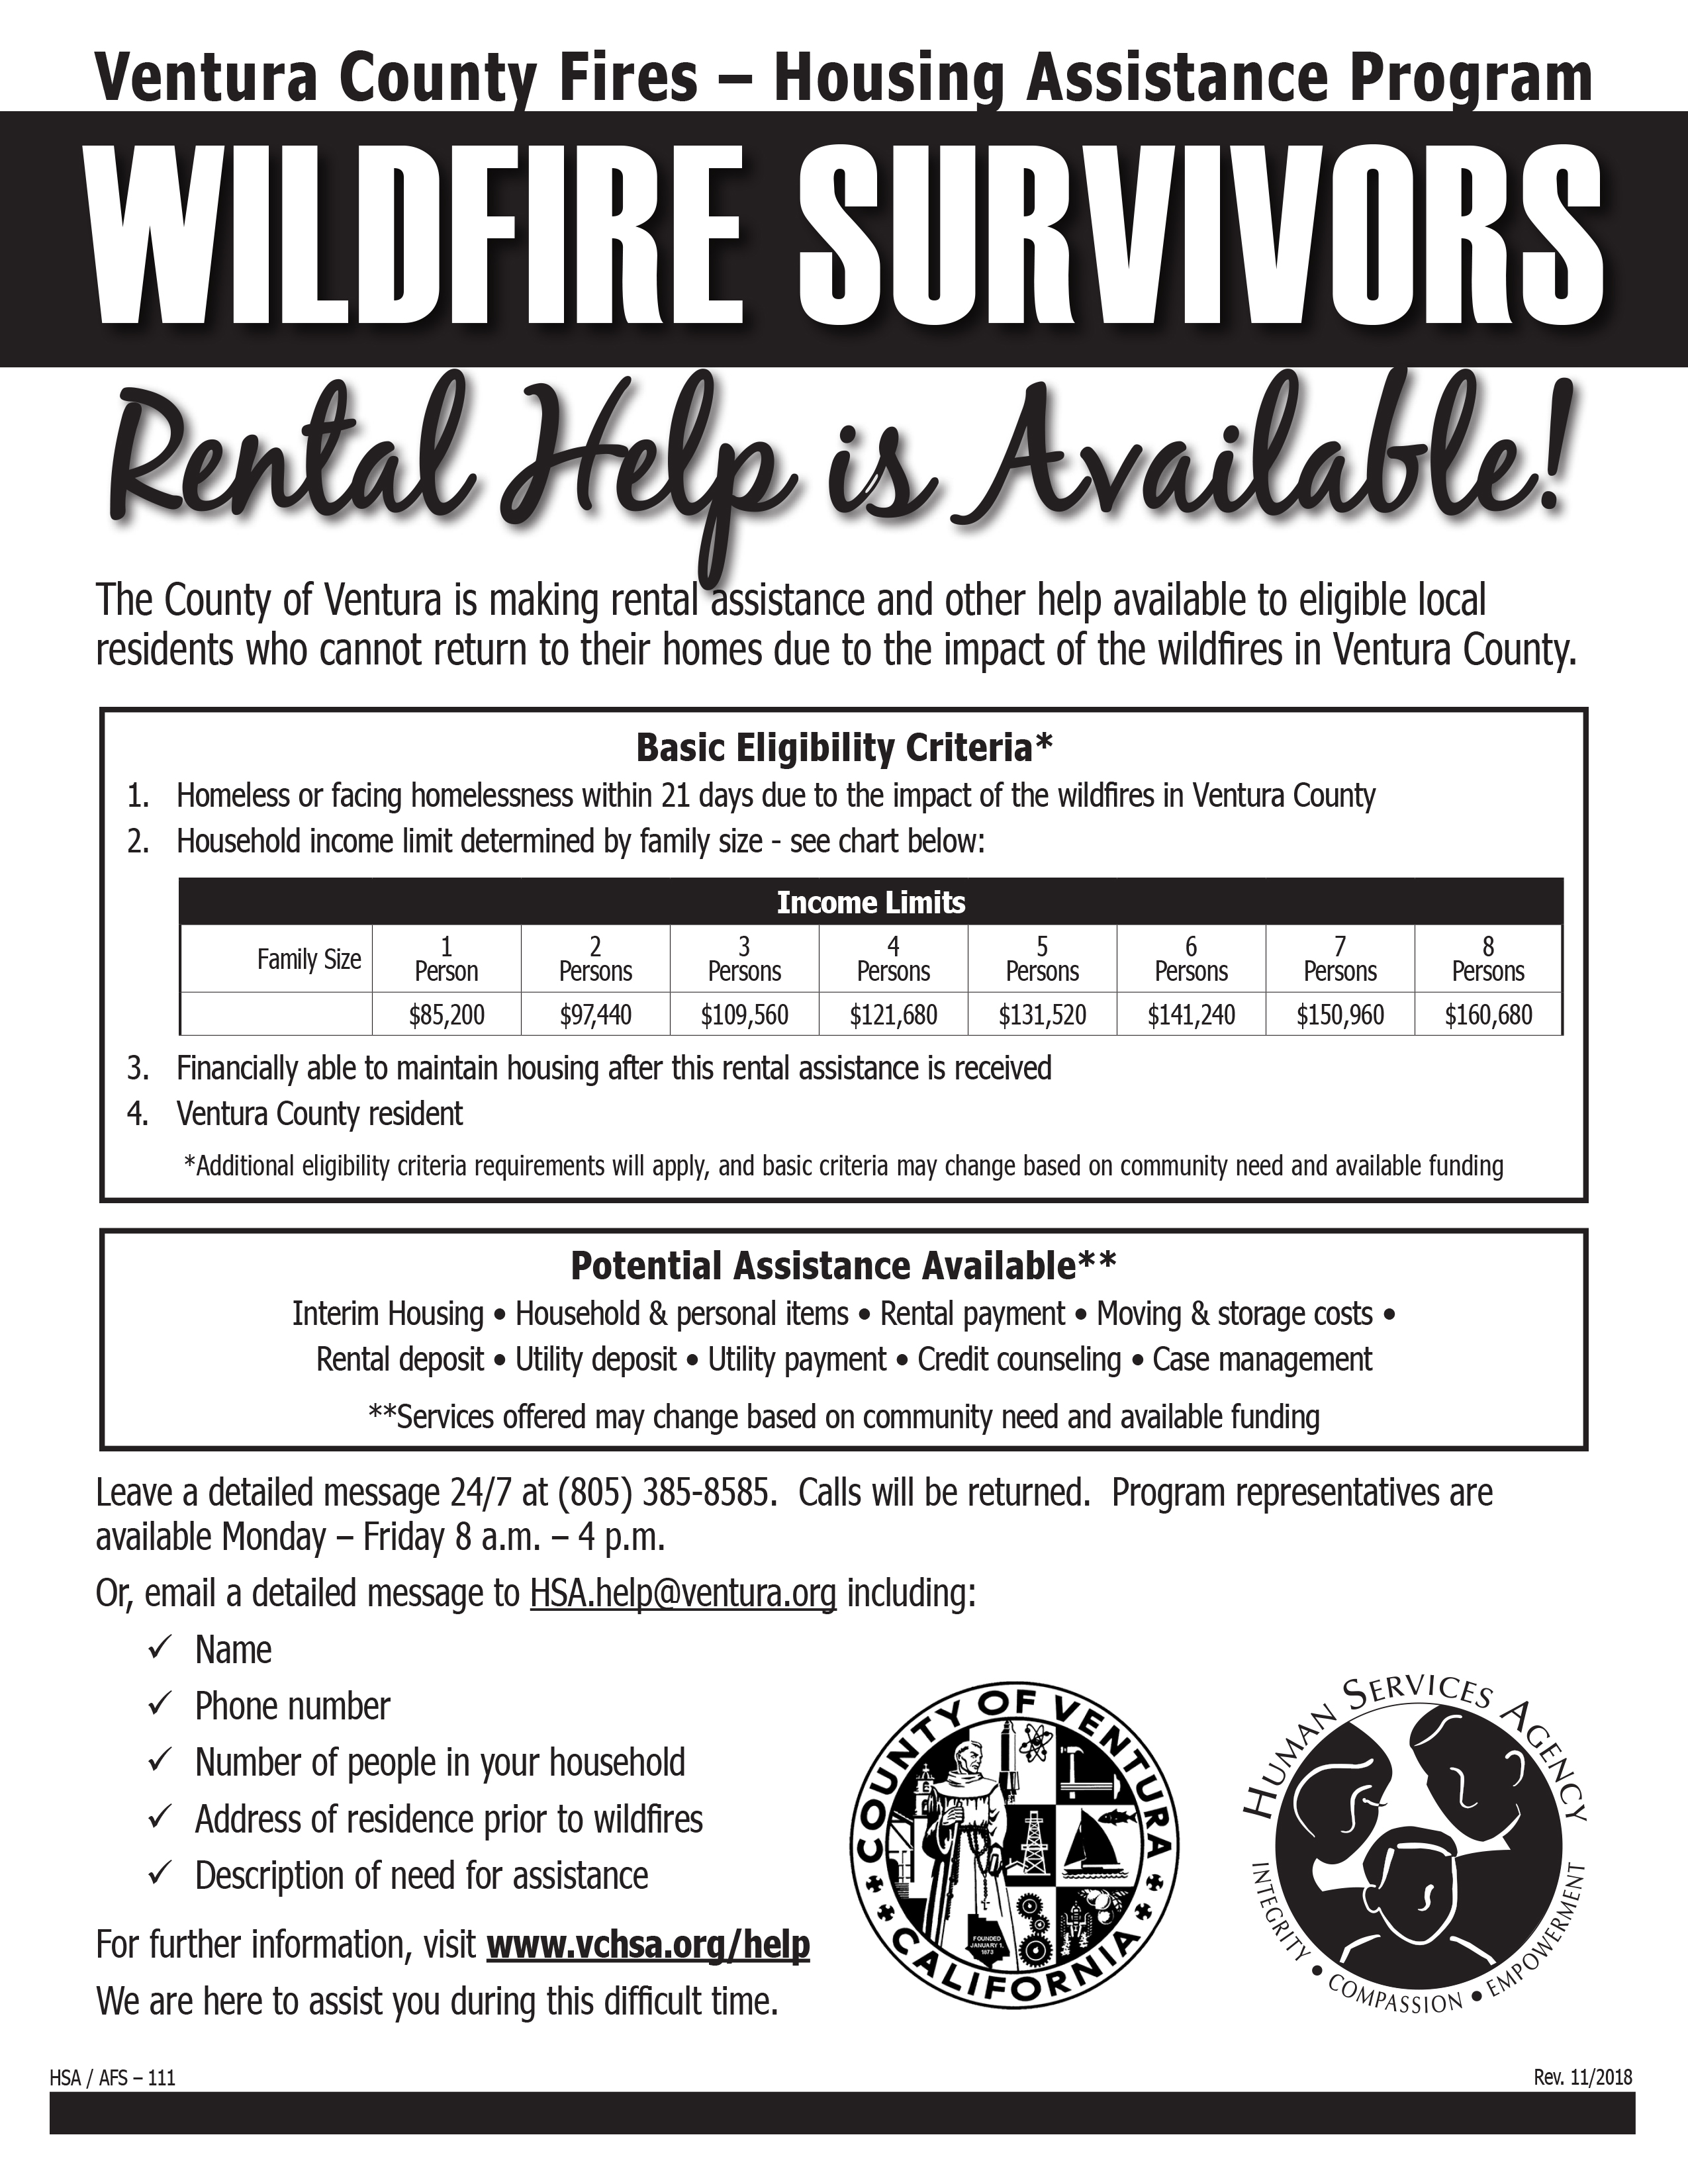 Wildfire Survivors Rental Help Available